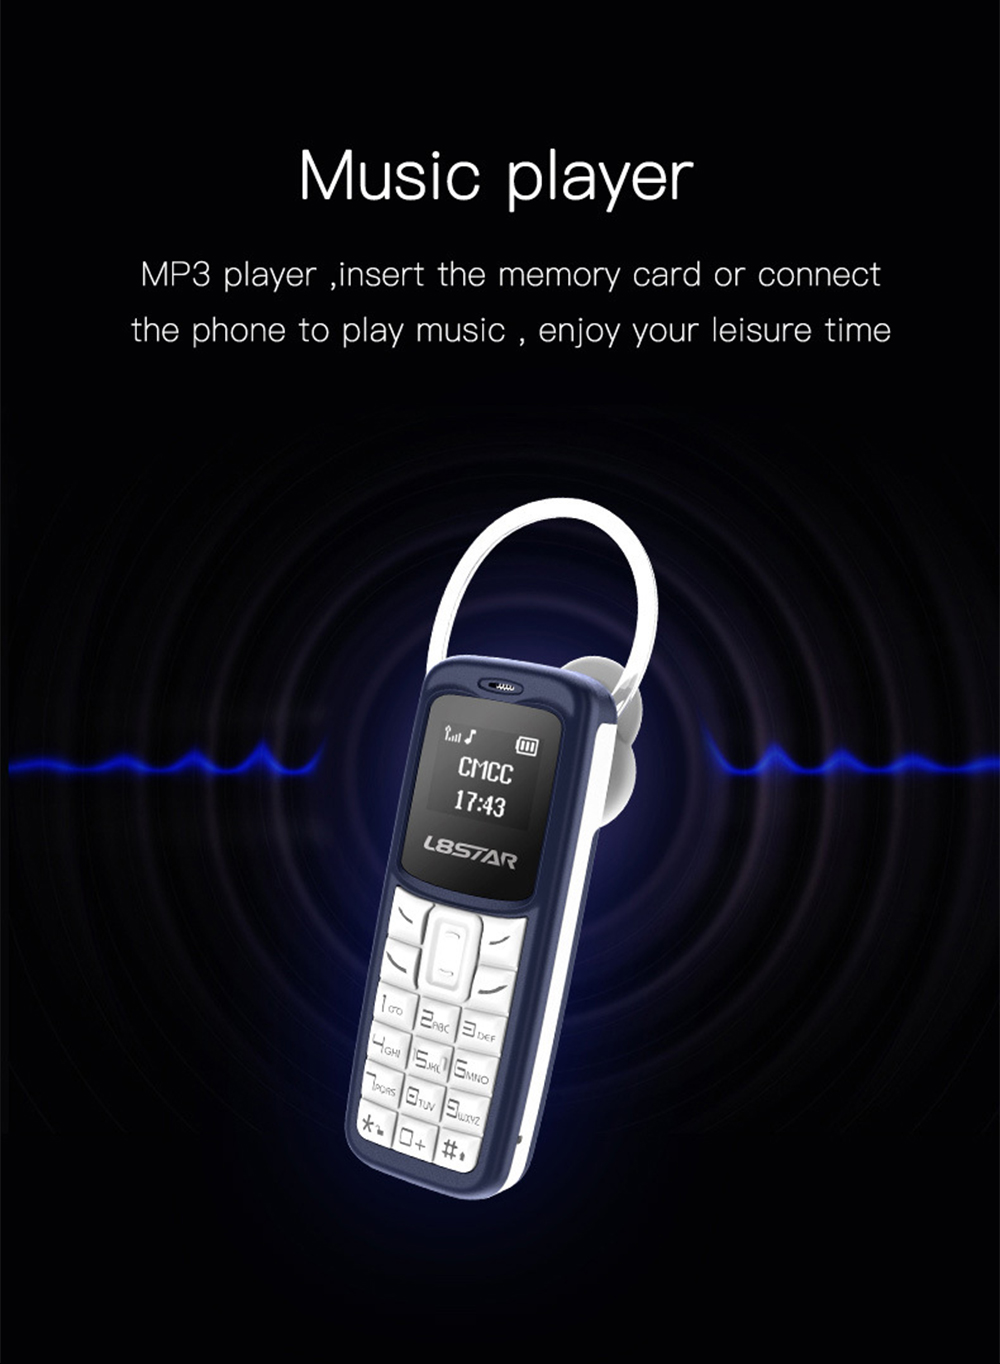 L8STAR BM10 Mini Phone 0.6 inch Lightweight Small Mobile Phone Magic Voice Call Bluetooth Mini Cell Phone 6